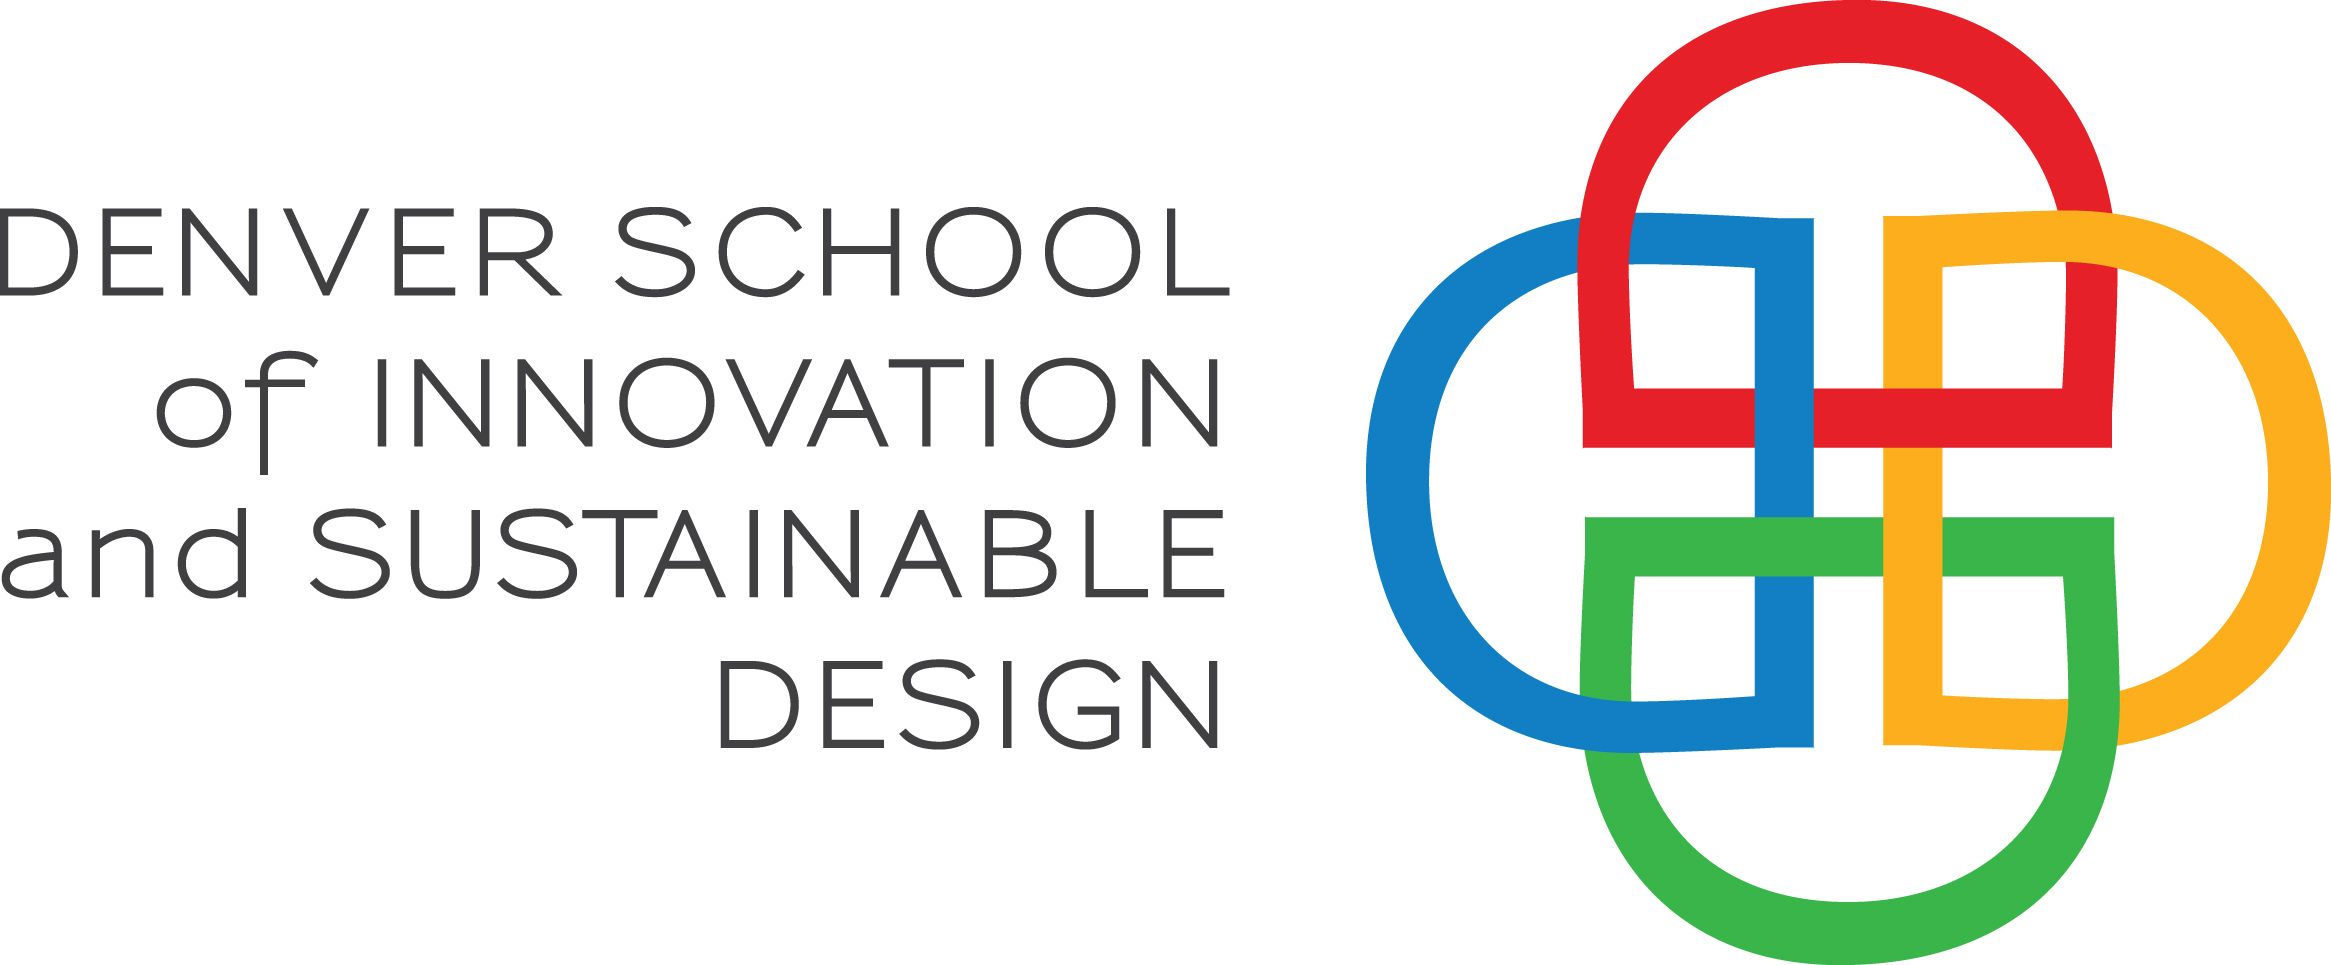 Denver School of Innovation & Sustainable Design